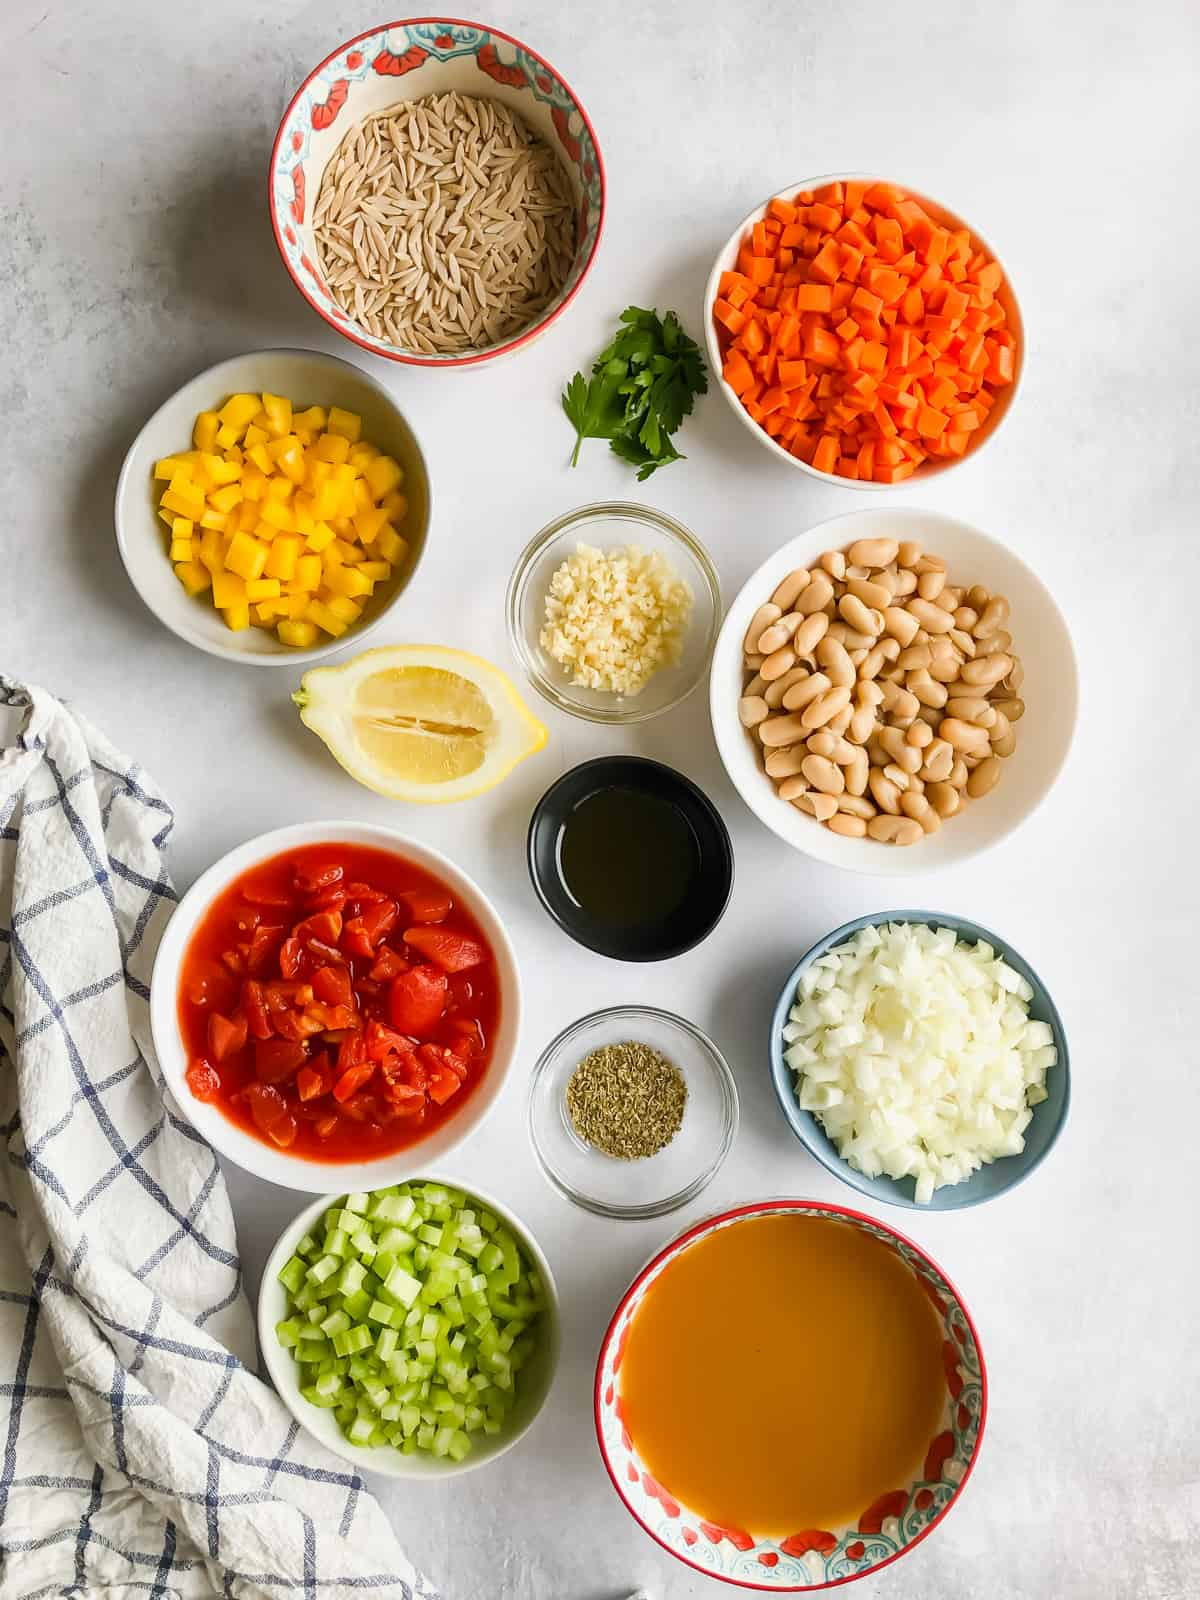 Ingredients for Vegetable Orzo Soup in bowls